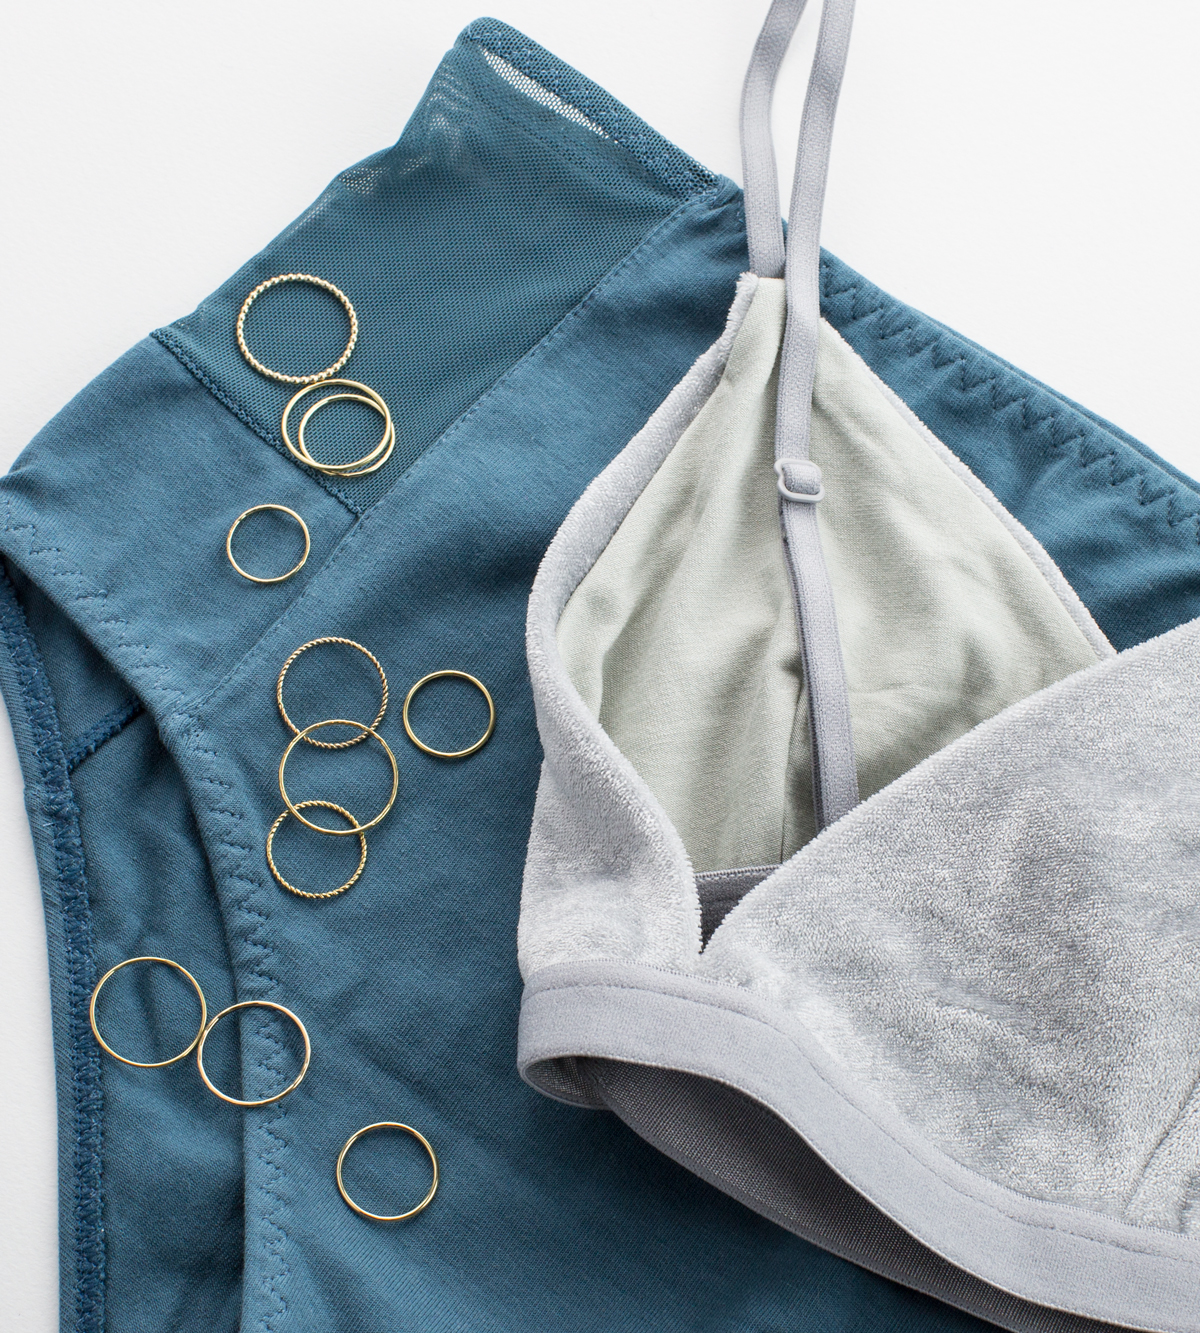 UNDIES:  The Nude Label Panties ,  Baserange Bra .  GLDN JEWELRY:  Adria  and  Aire  Dainty Stacking Bands